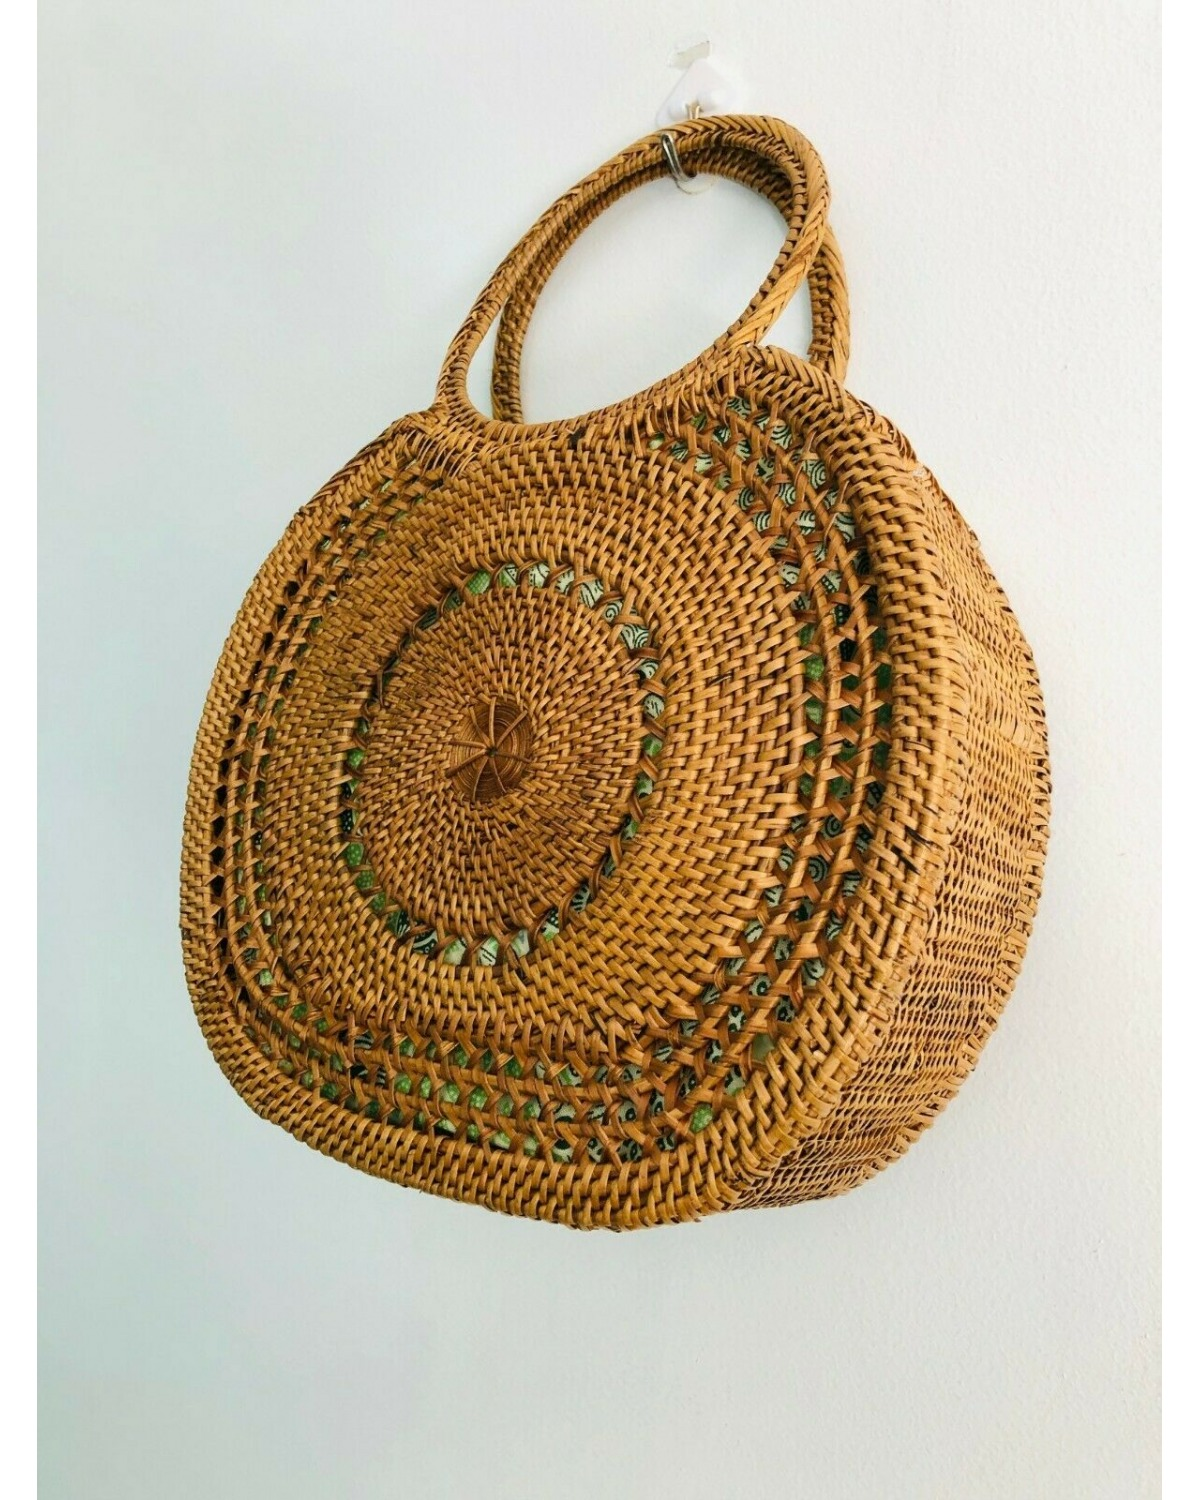 https://deanalan.us/2840-thickbox_default/bali-round-rattan-clutch.jpg